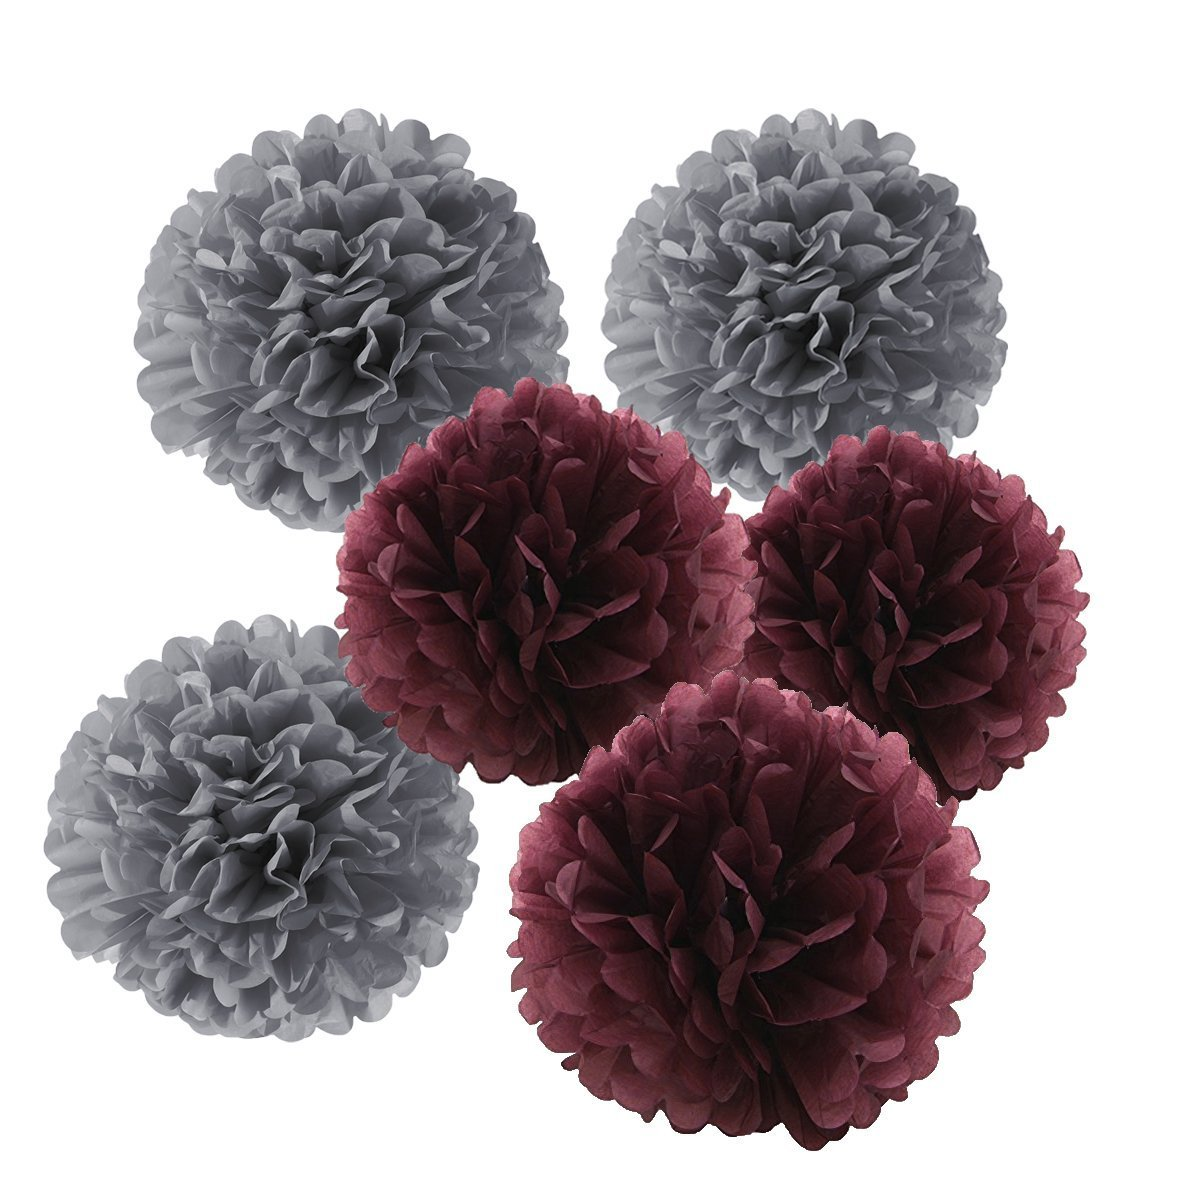 HEARTFEEL 12pcs Tissue Paper Pom Poms - Grey Burgundy Paper Flowers 8inch 10inch Tissue Paper Balls,Best Paper Pom Pom Decorations for Wedding Birthday Baby Shower Bachelorette Nursery Decor by HEARTFEEL